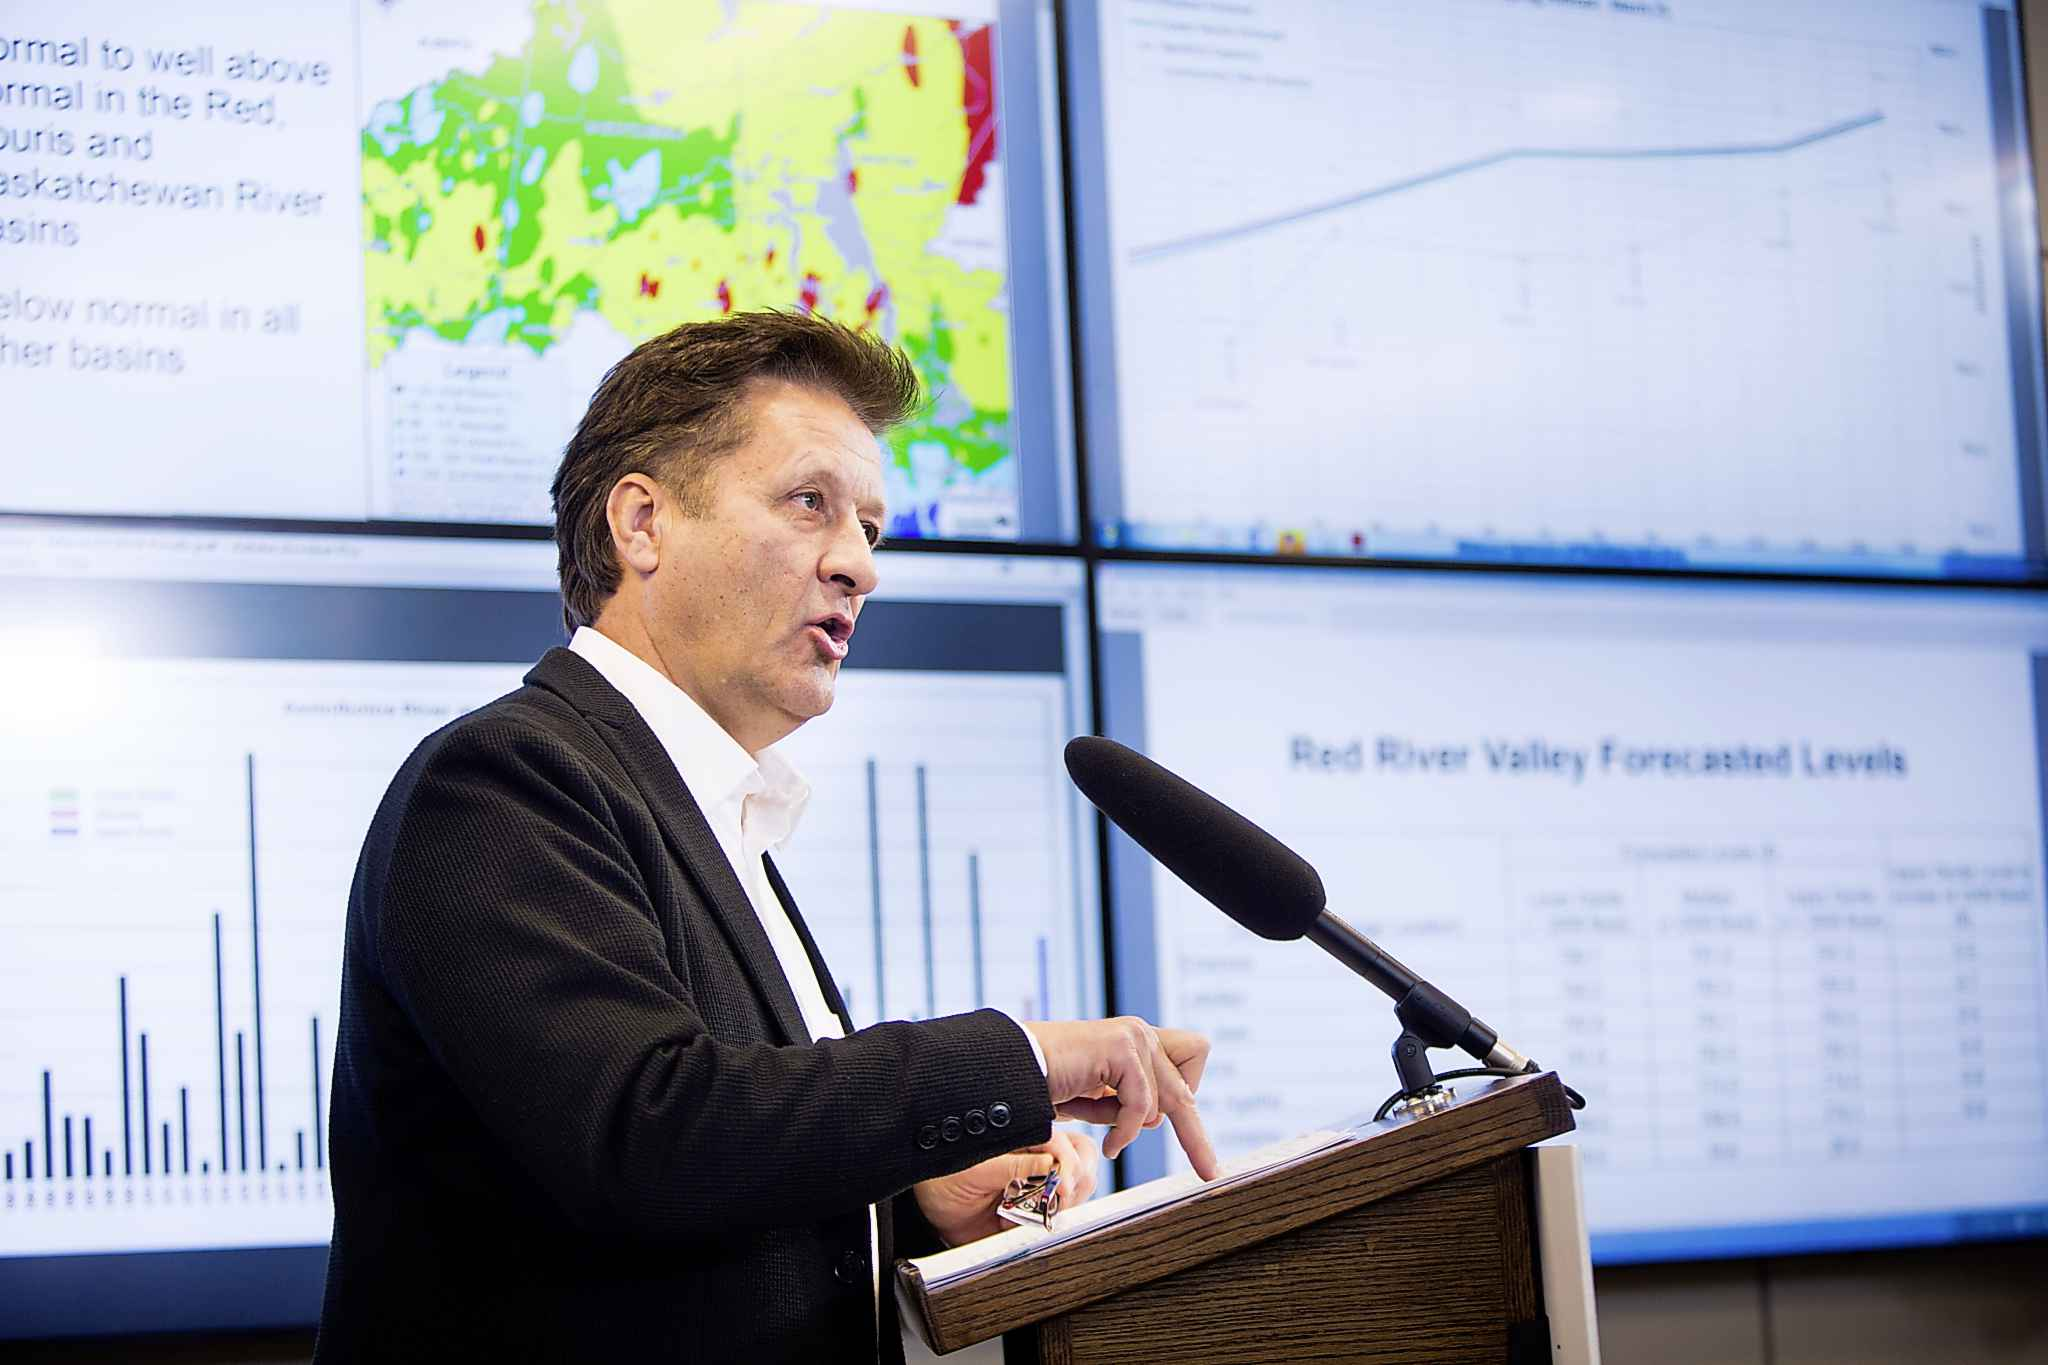 Infrastructure Minister Ron Schuler speaks about the flood outlook at the Hydrologic Forecast Centre in Winnipeg on Wednesday.